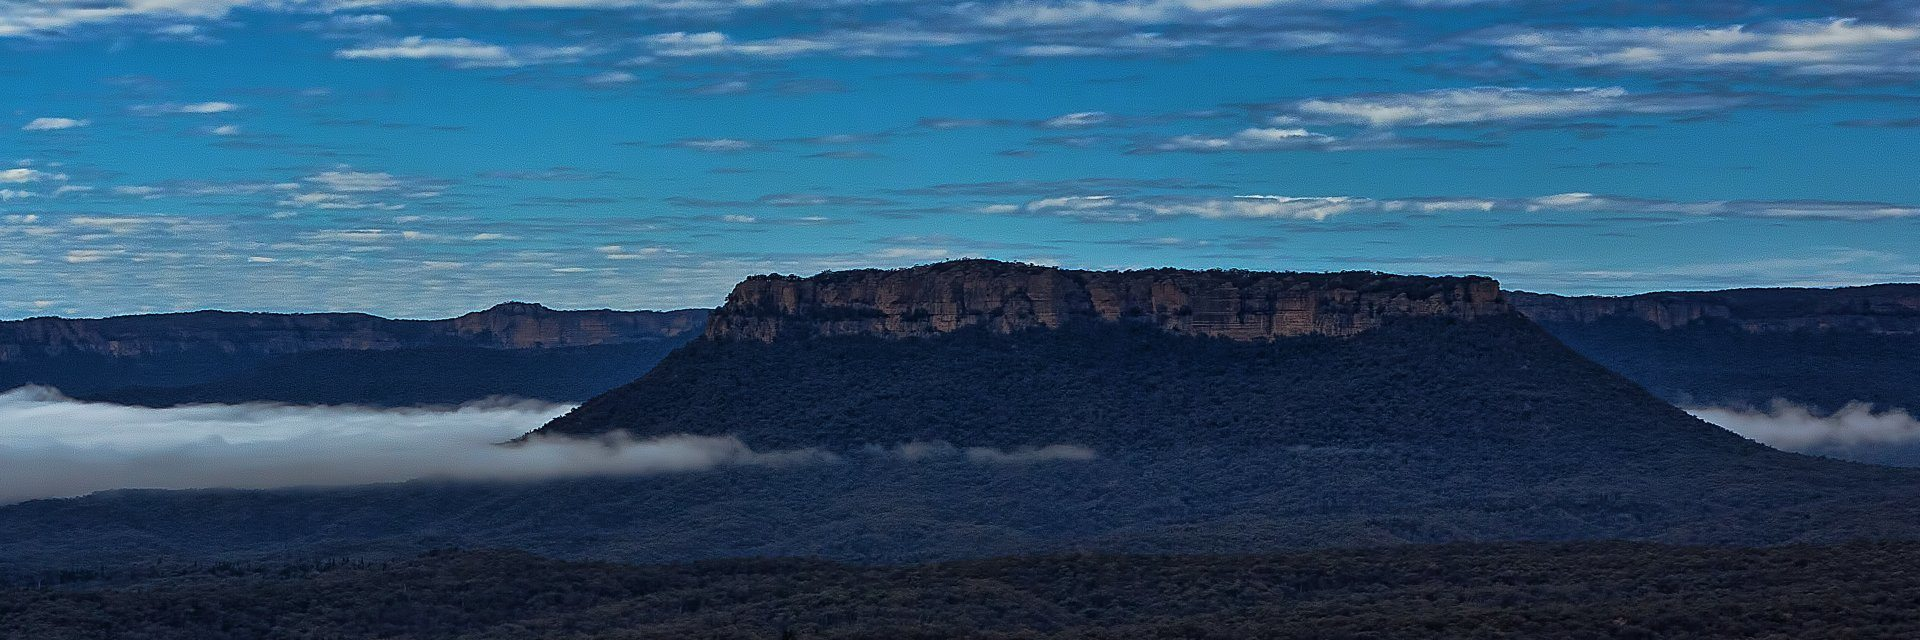 Capartee Valley, Blue Mountains, New South Wales, Outback Australia Road Trip